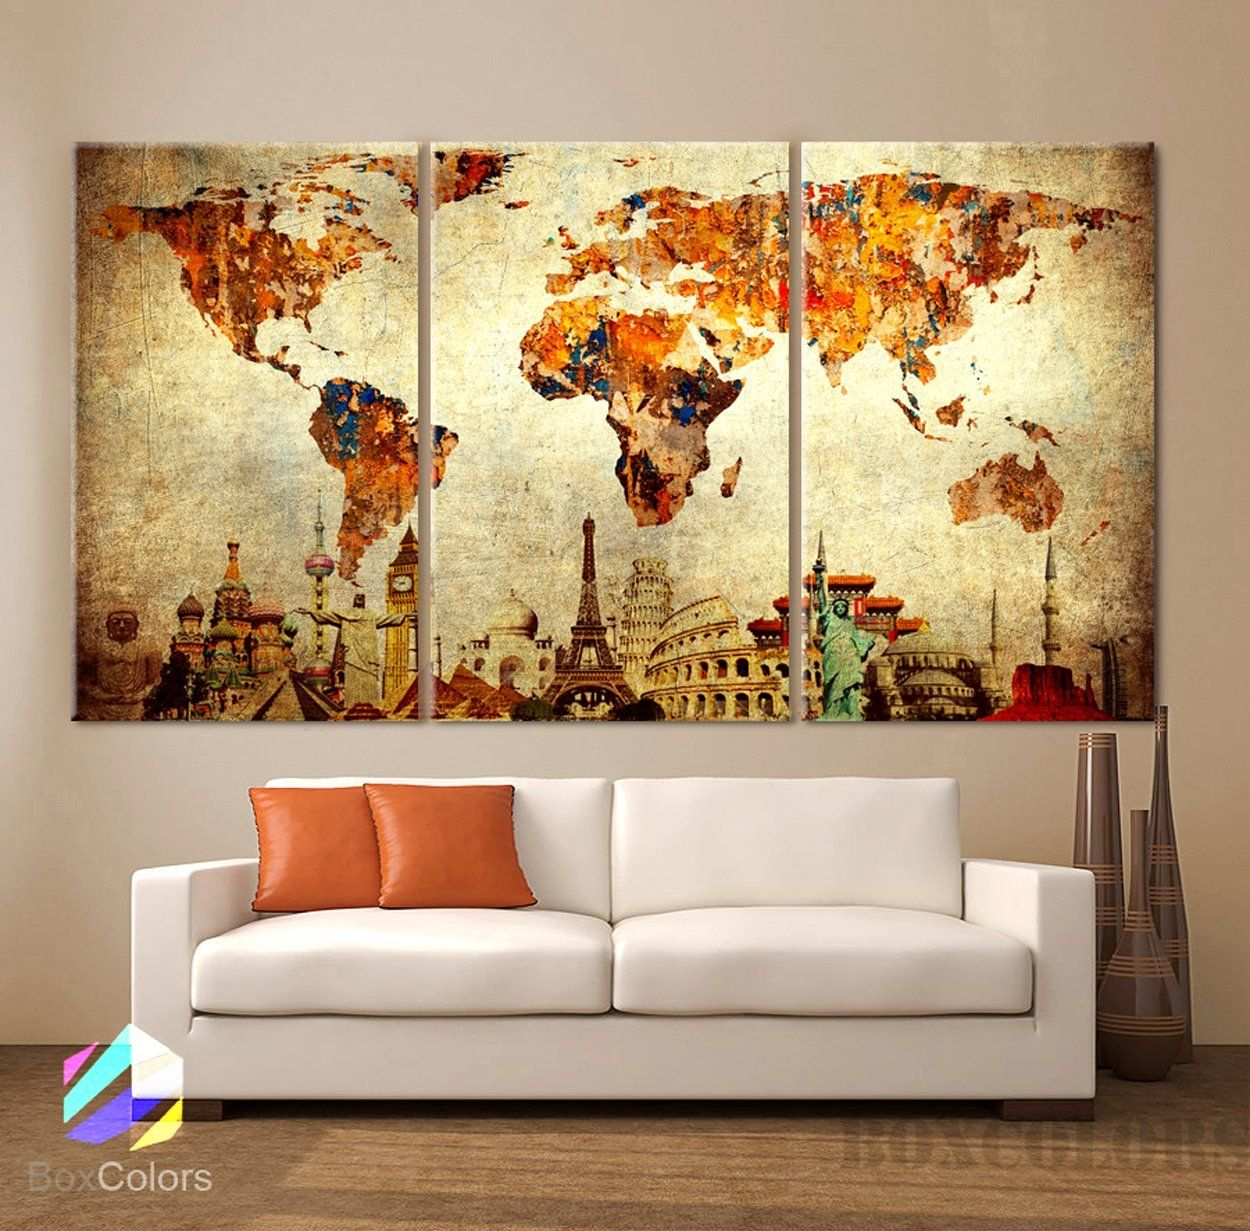 Amazon large 30x 60 3 panels 30x20 ea art canvas print amazon large 30x 60 3 panels 30x20 ea art canvas gumiabroncs Image collections